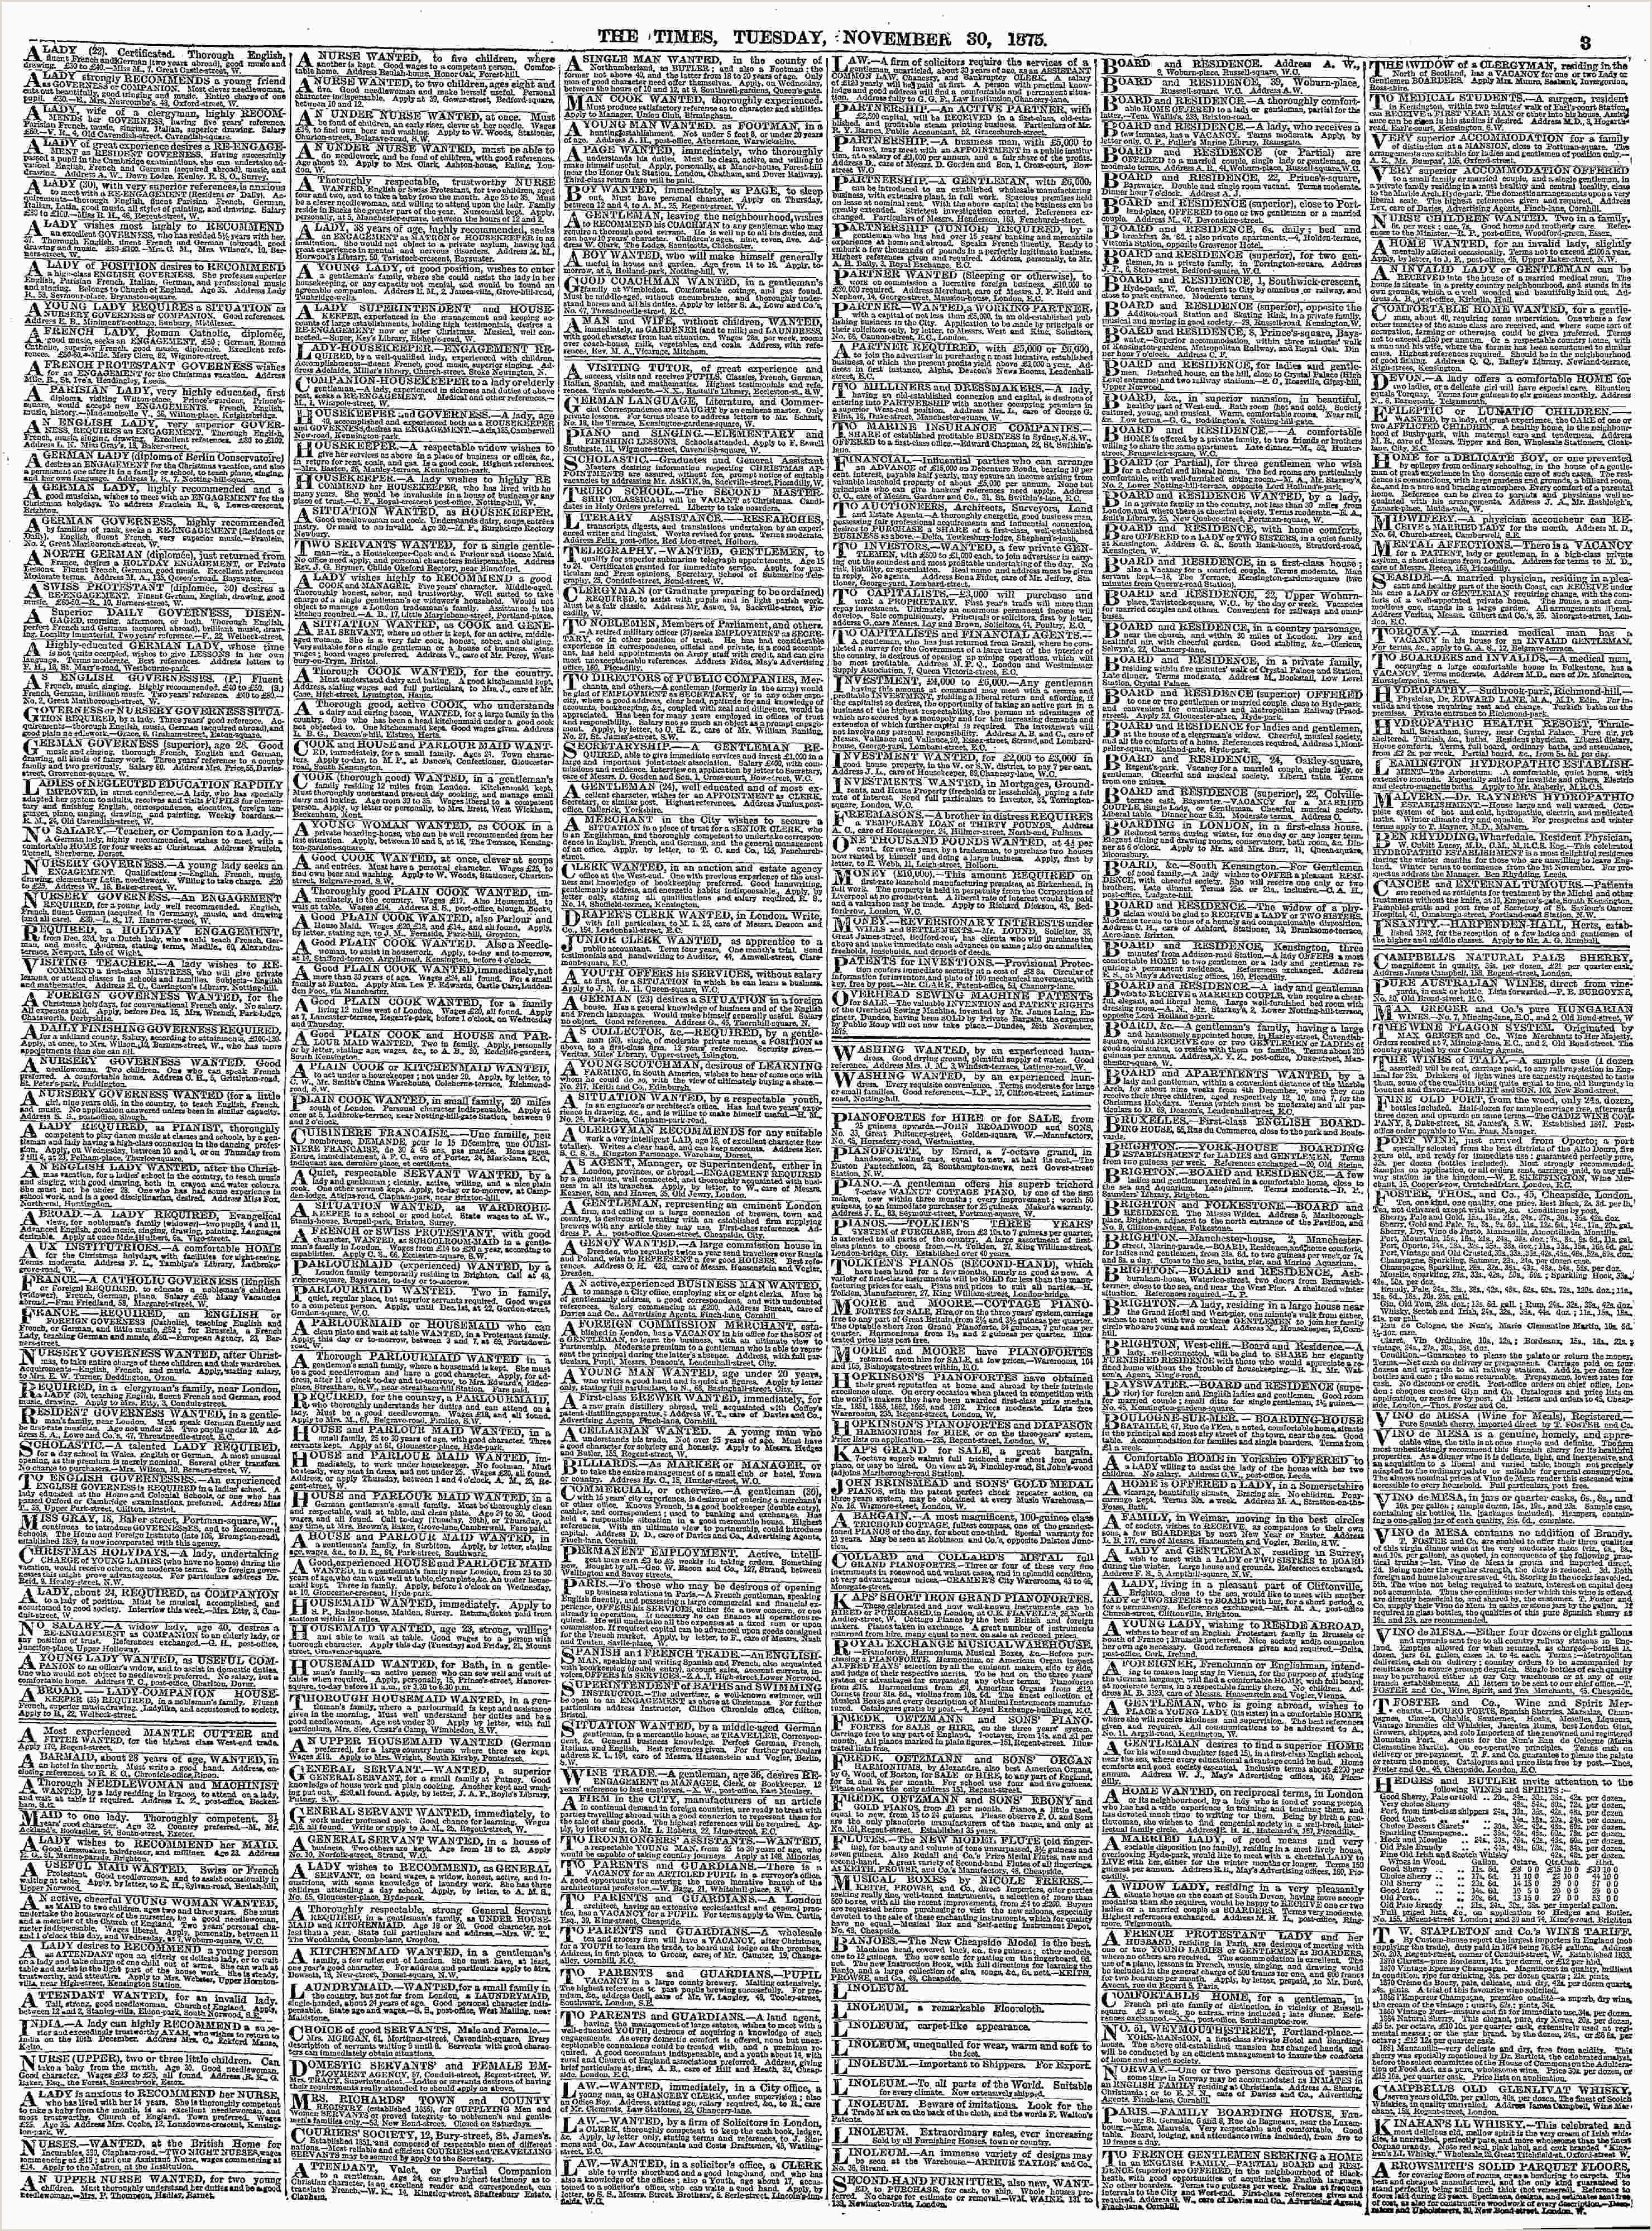 Archive Page Viewer November 30 1875